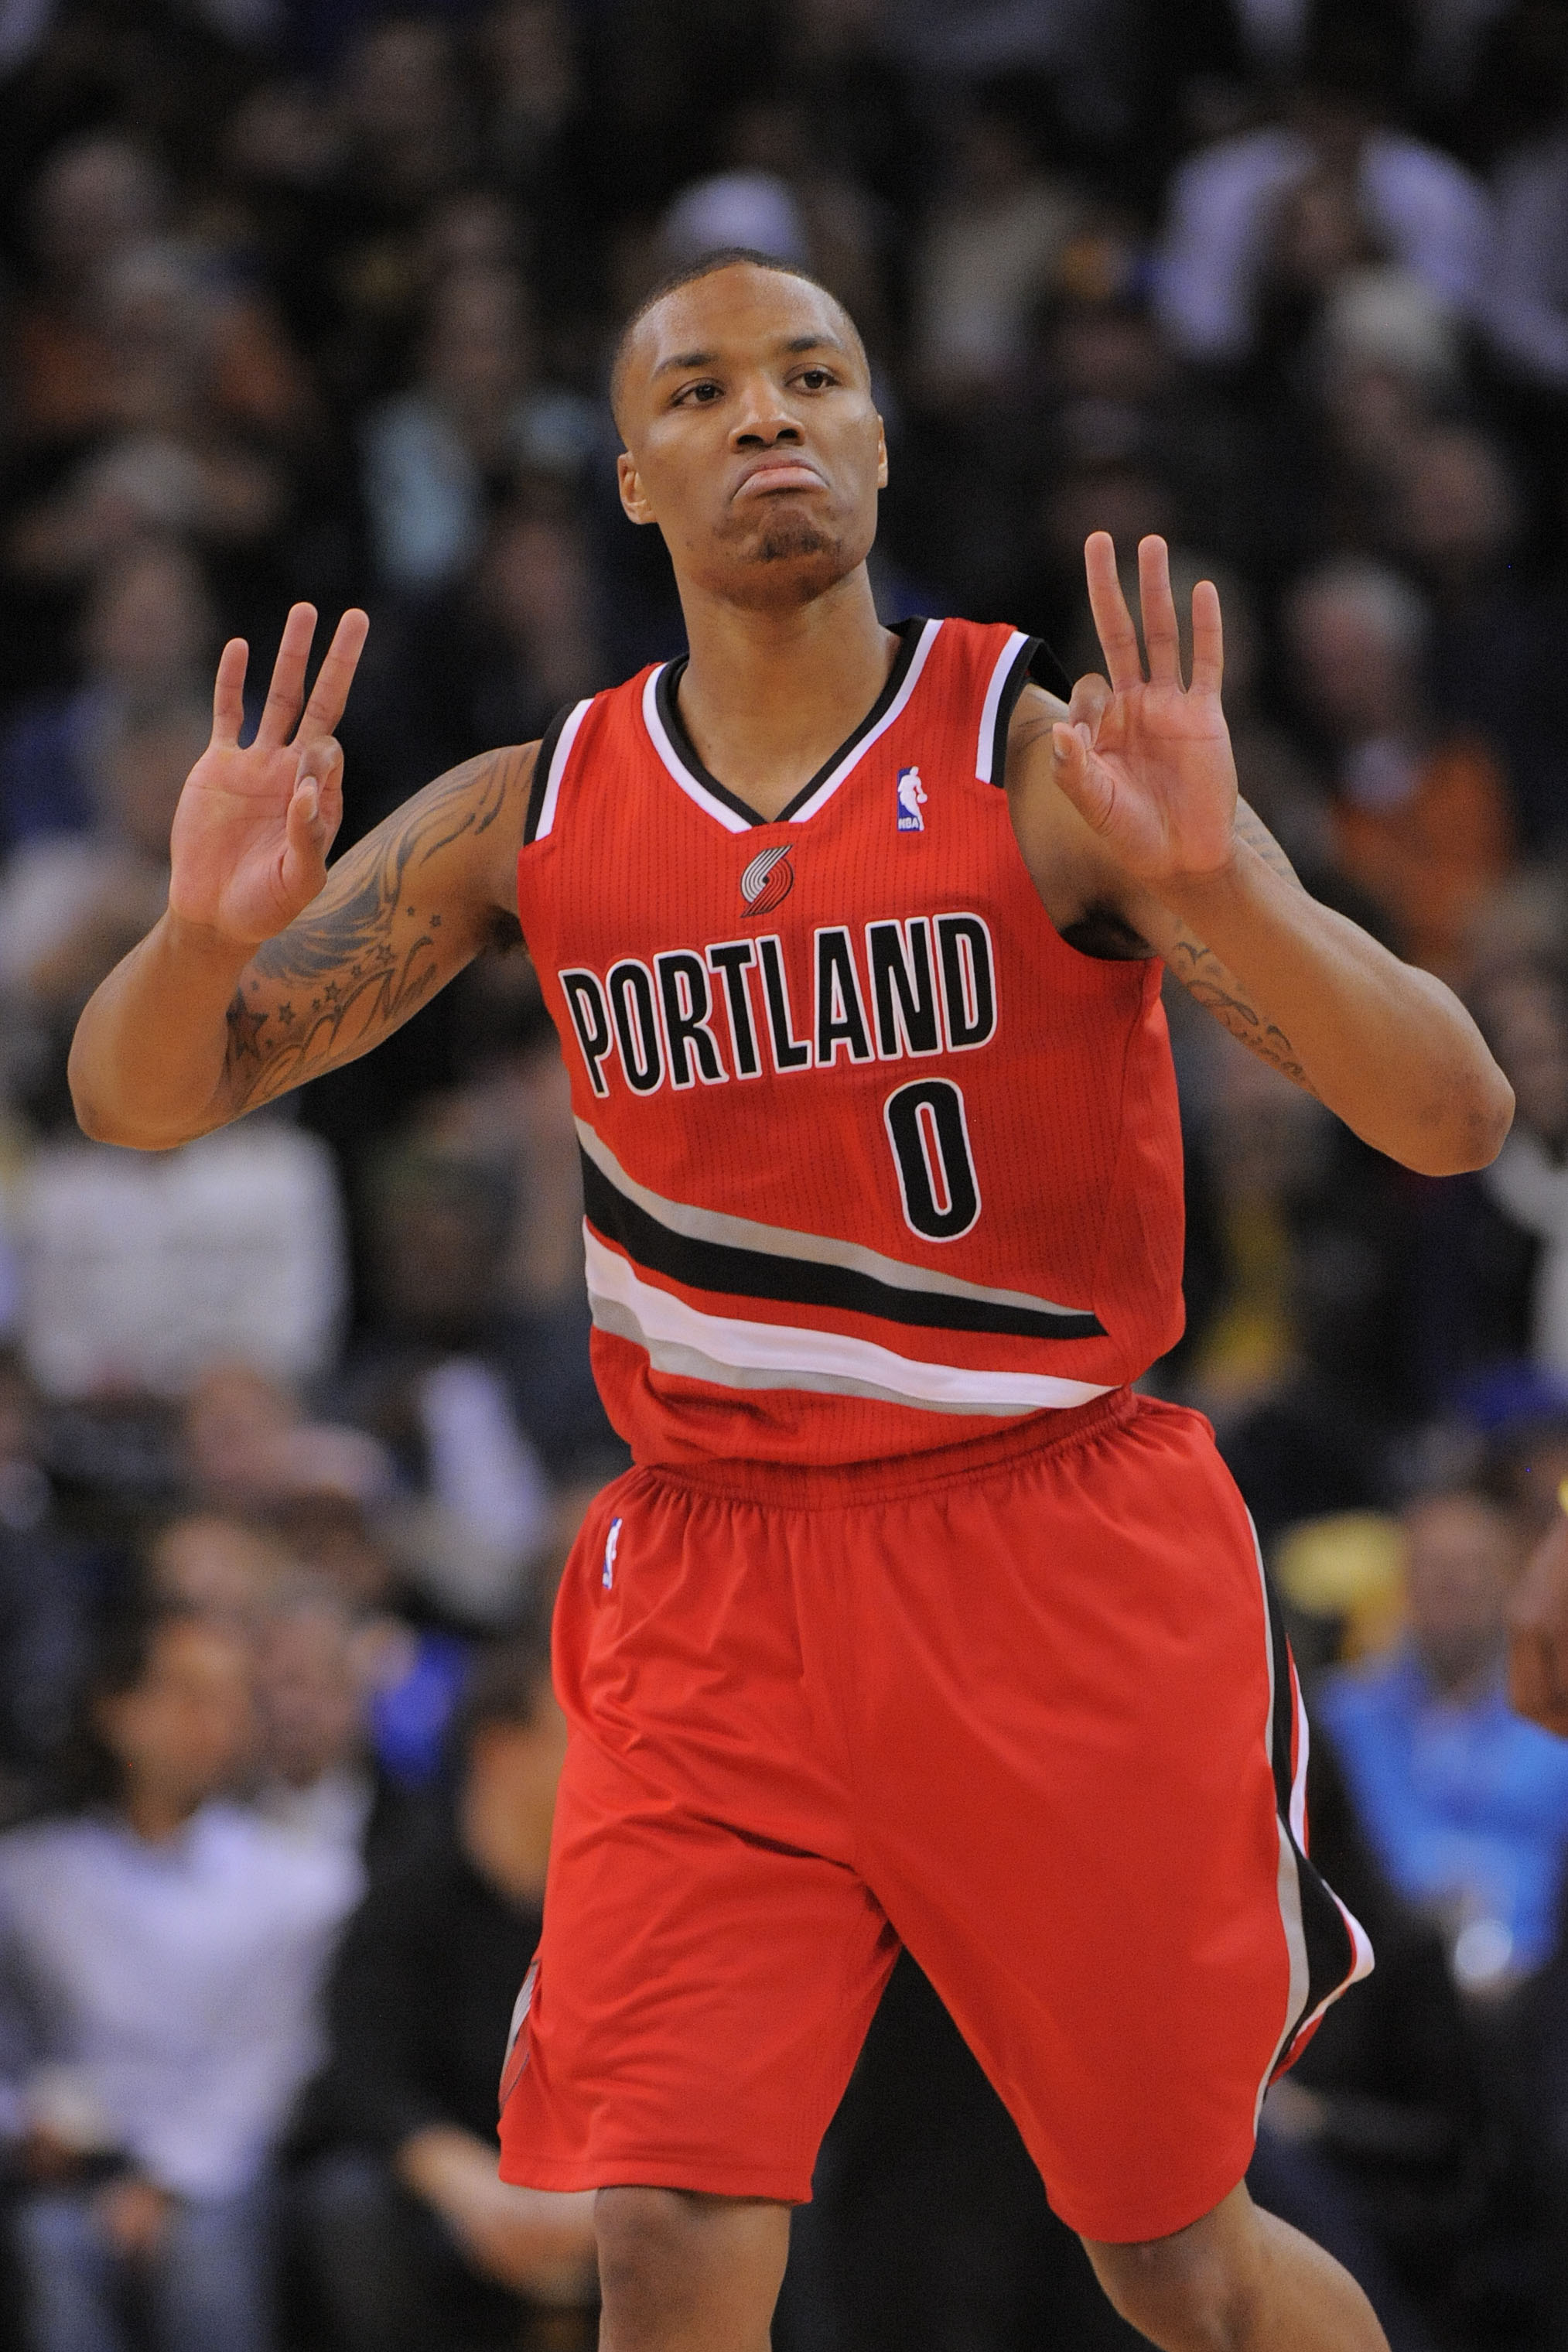 Damian Lillard is averaging 18.5 points and 6.5 assists this season. (USA Today Sports)